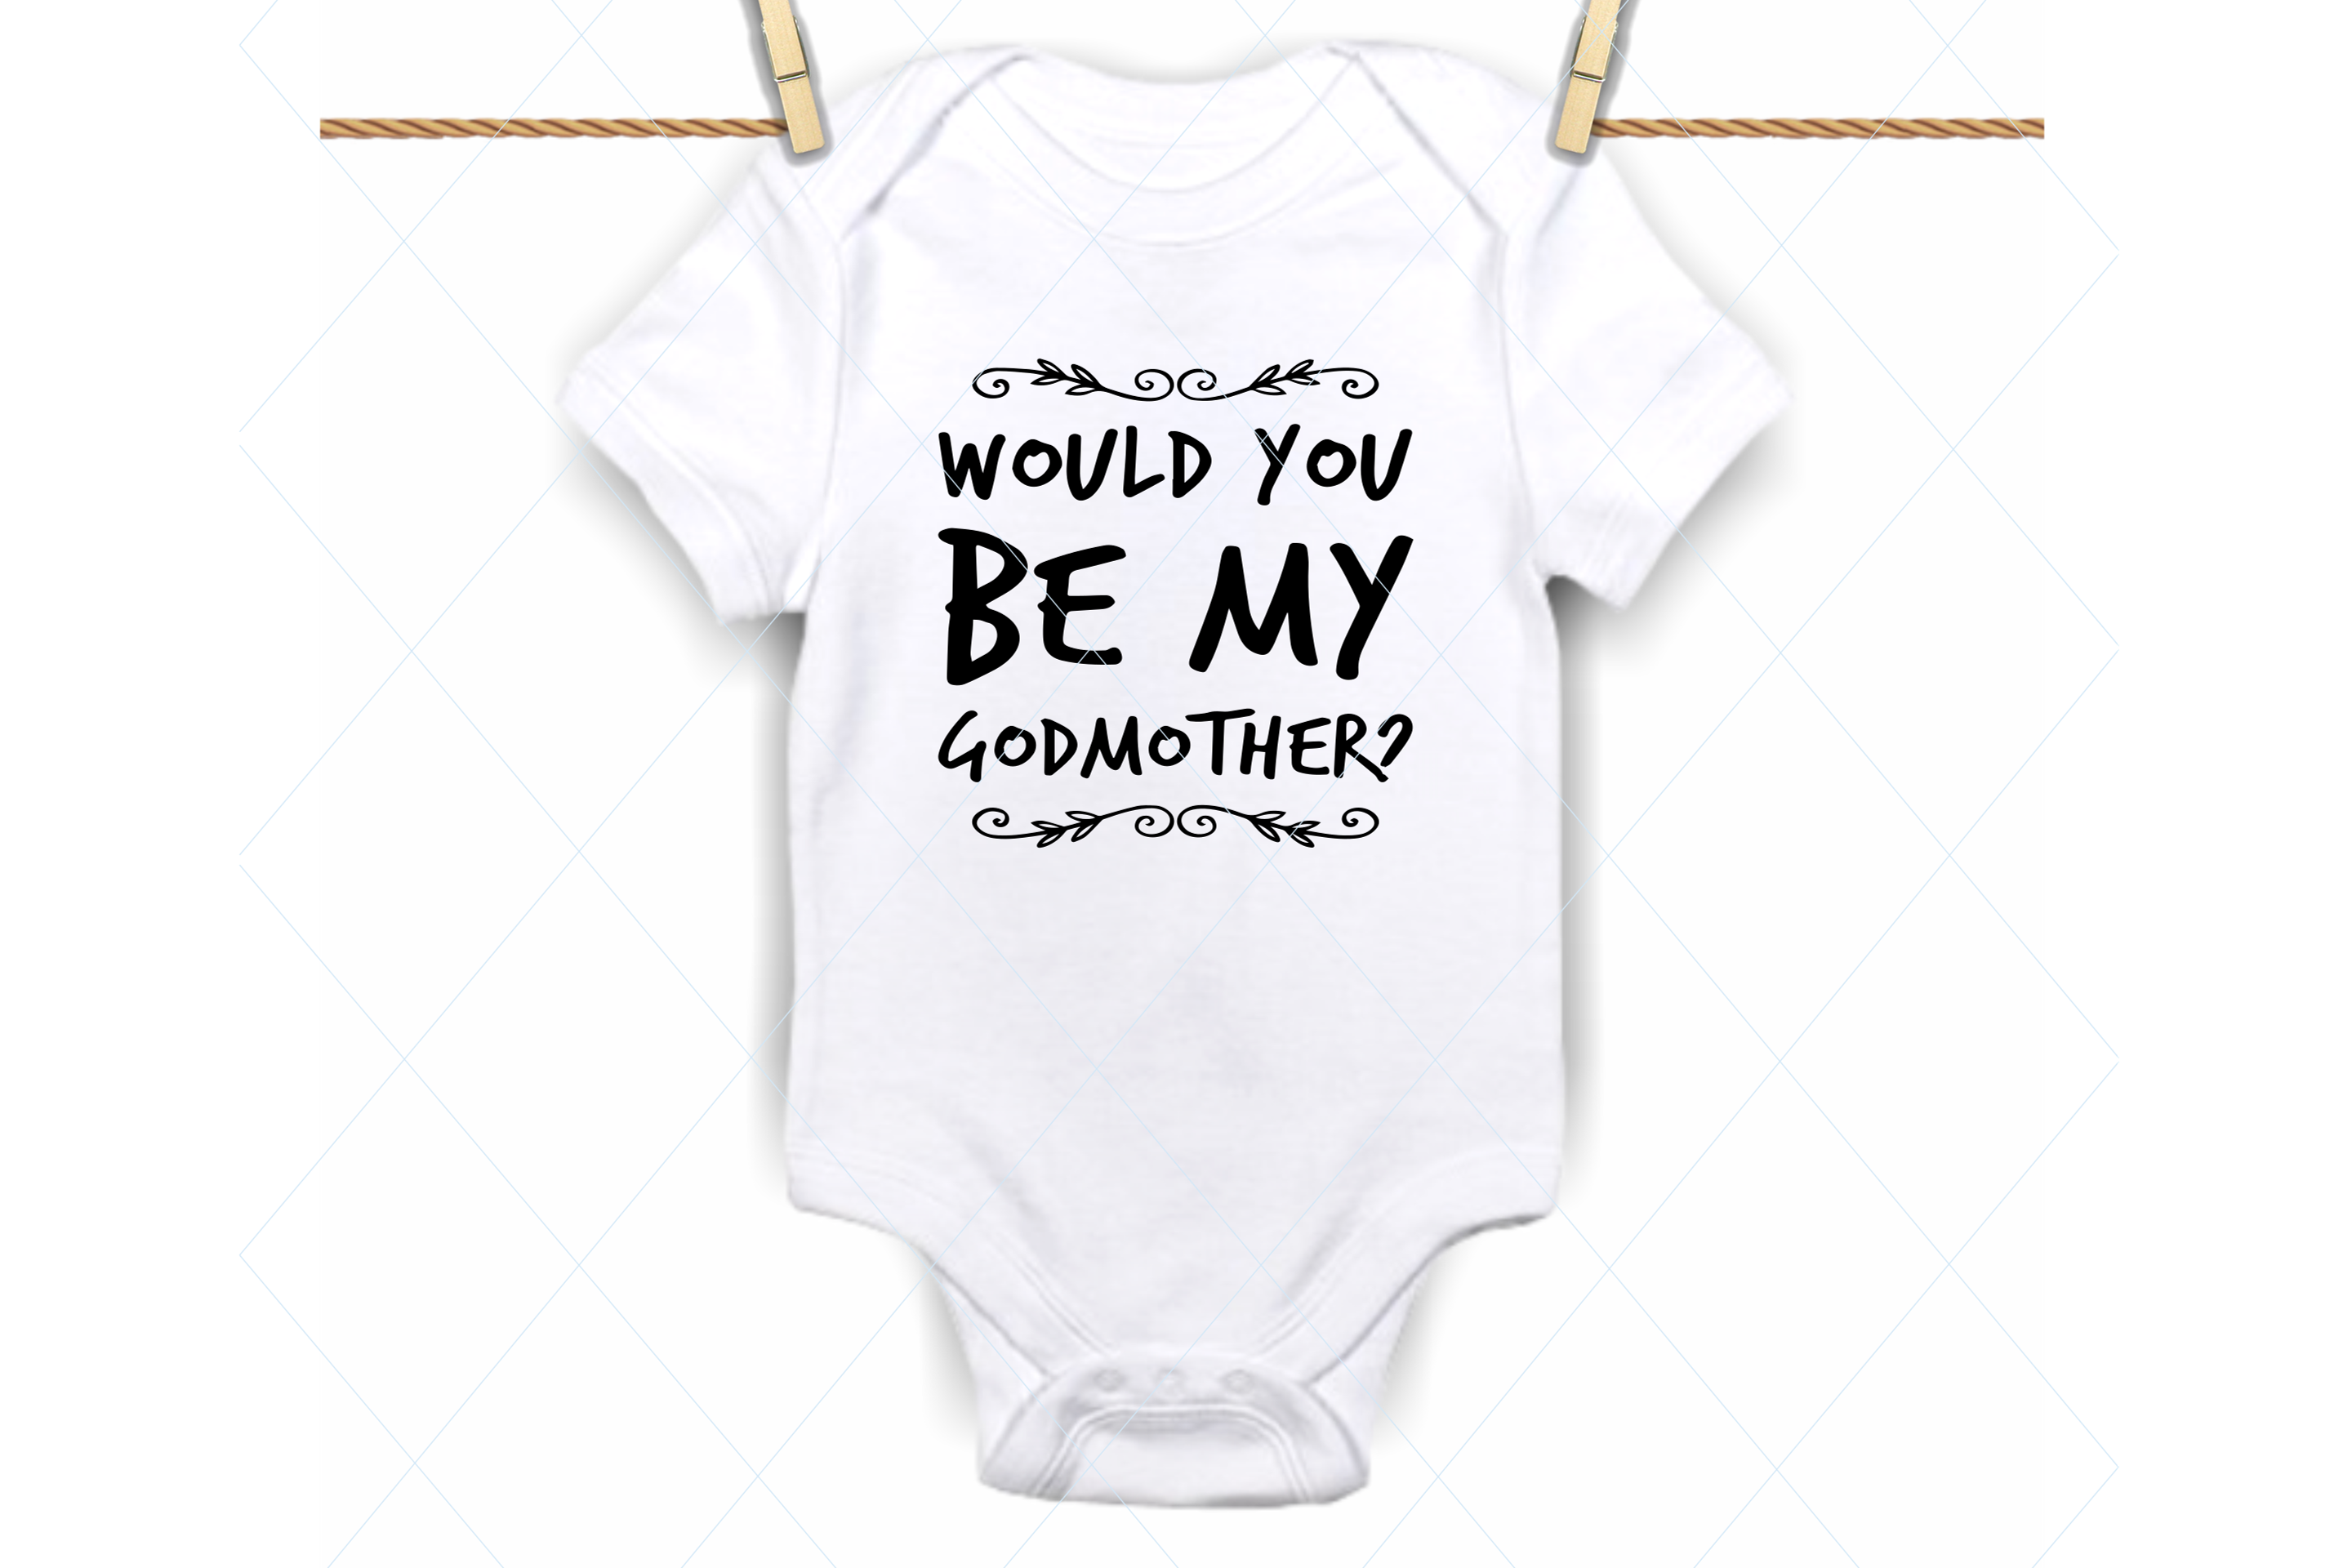 Download Free Godmother Baby Onesie Graphic By Thelovebyrds Creative Fabrica for Cricut Explore, Silhouette and other cutting machines.